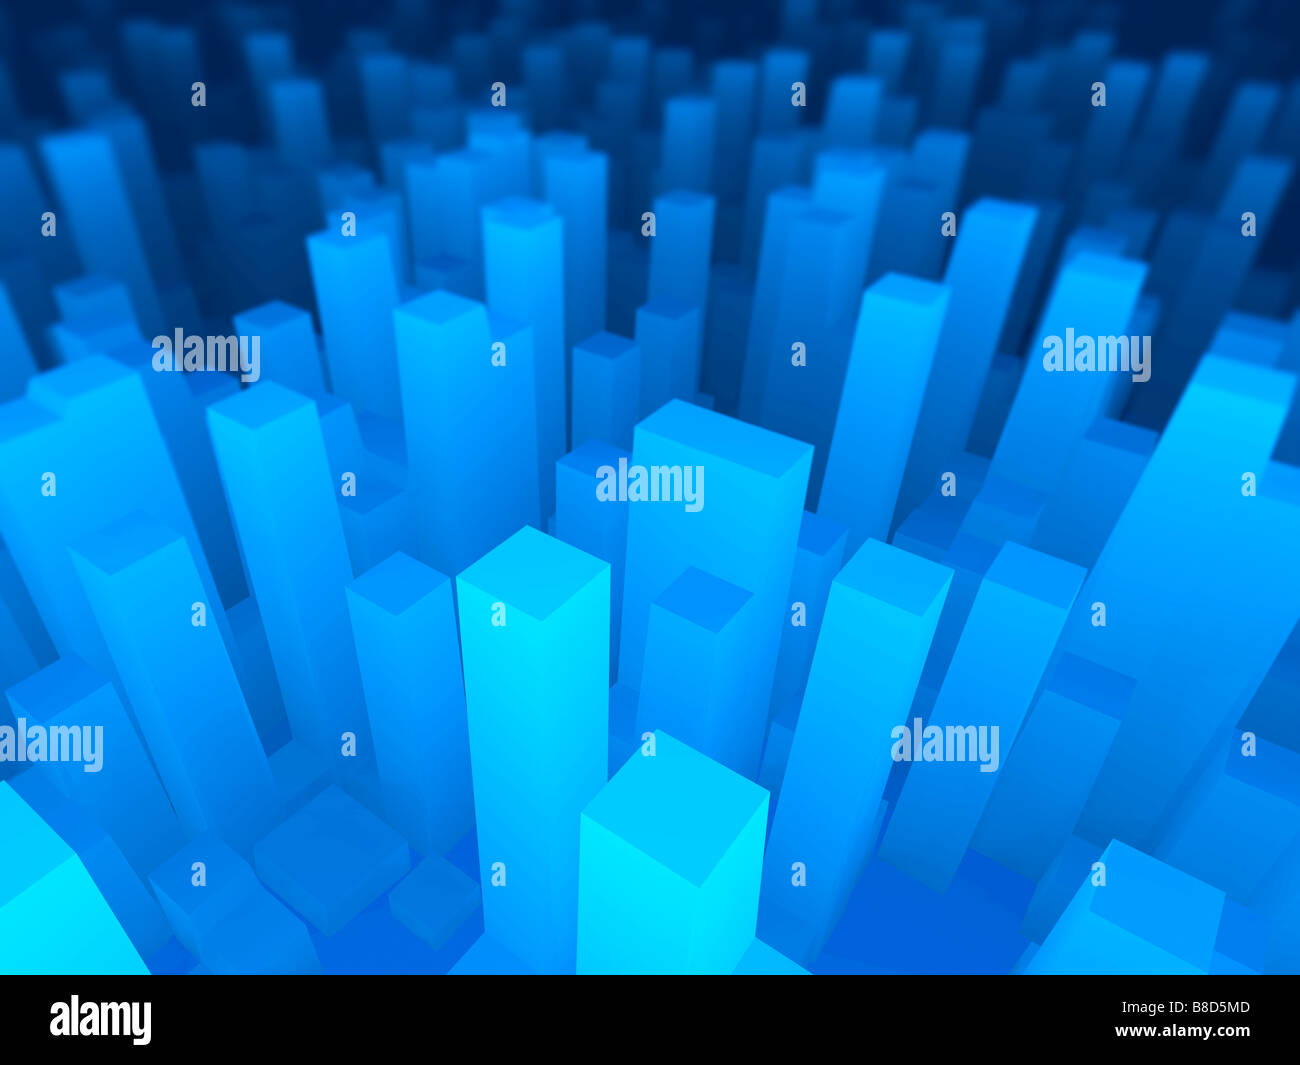 3D Illustration of an abstract blue cityscape. - Stock Image